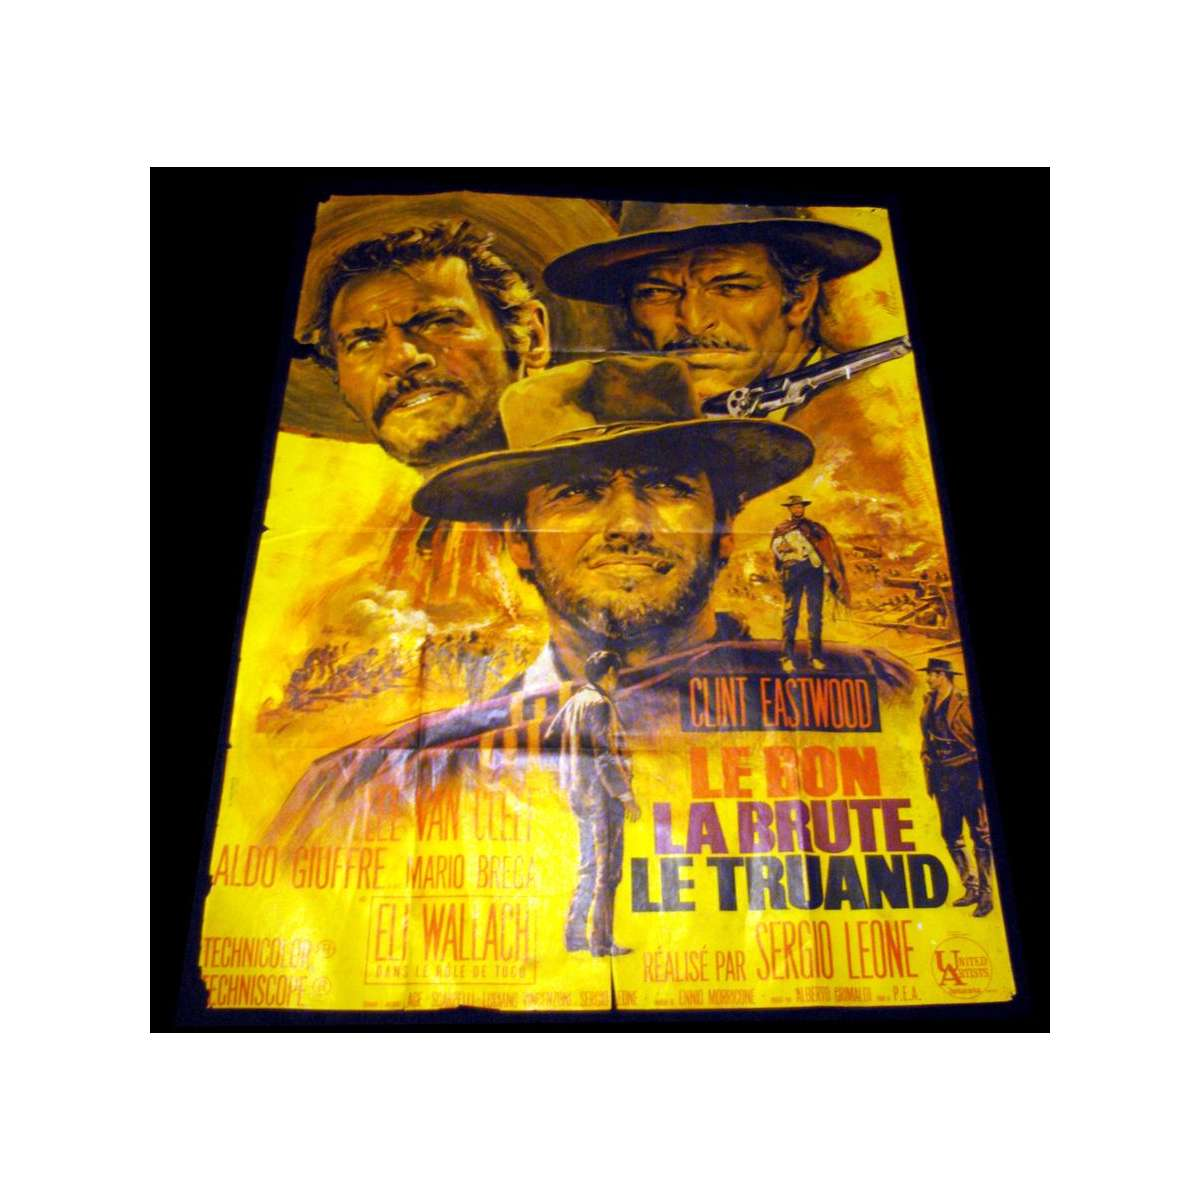 GOOD, THE BAD & THE UGLY French Original Movie Poster